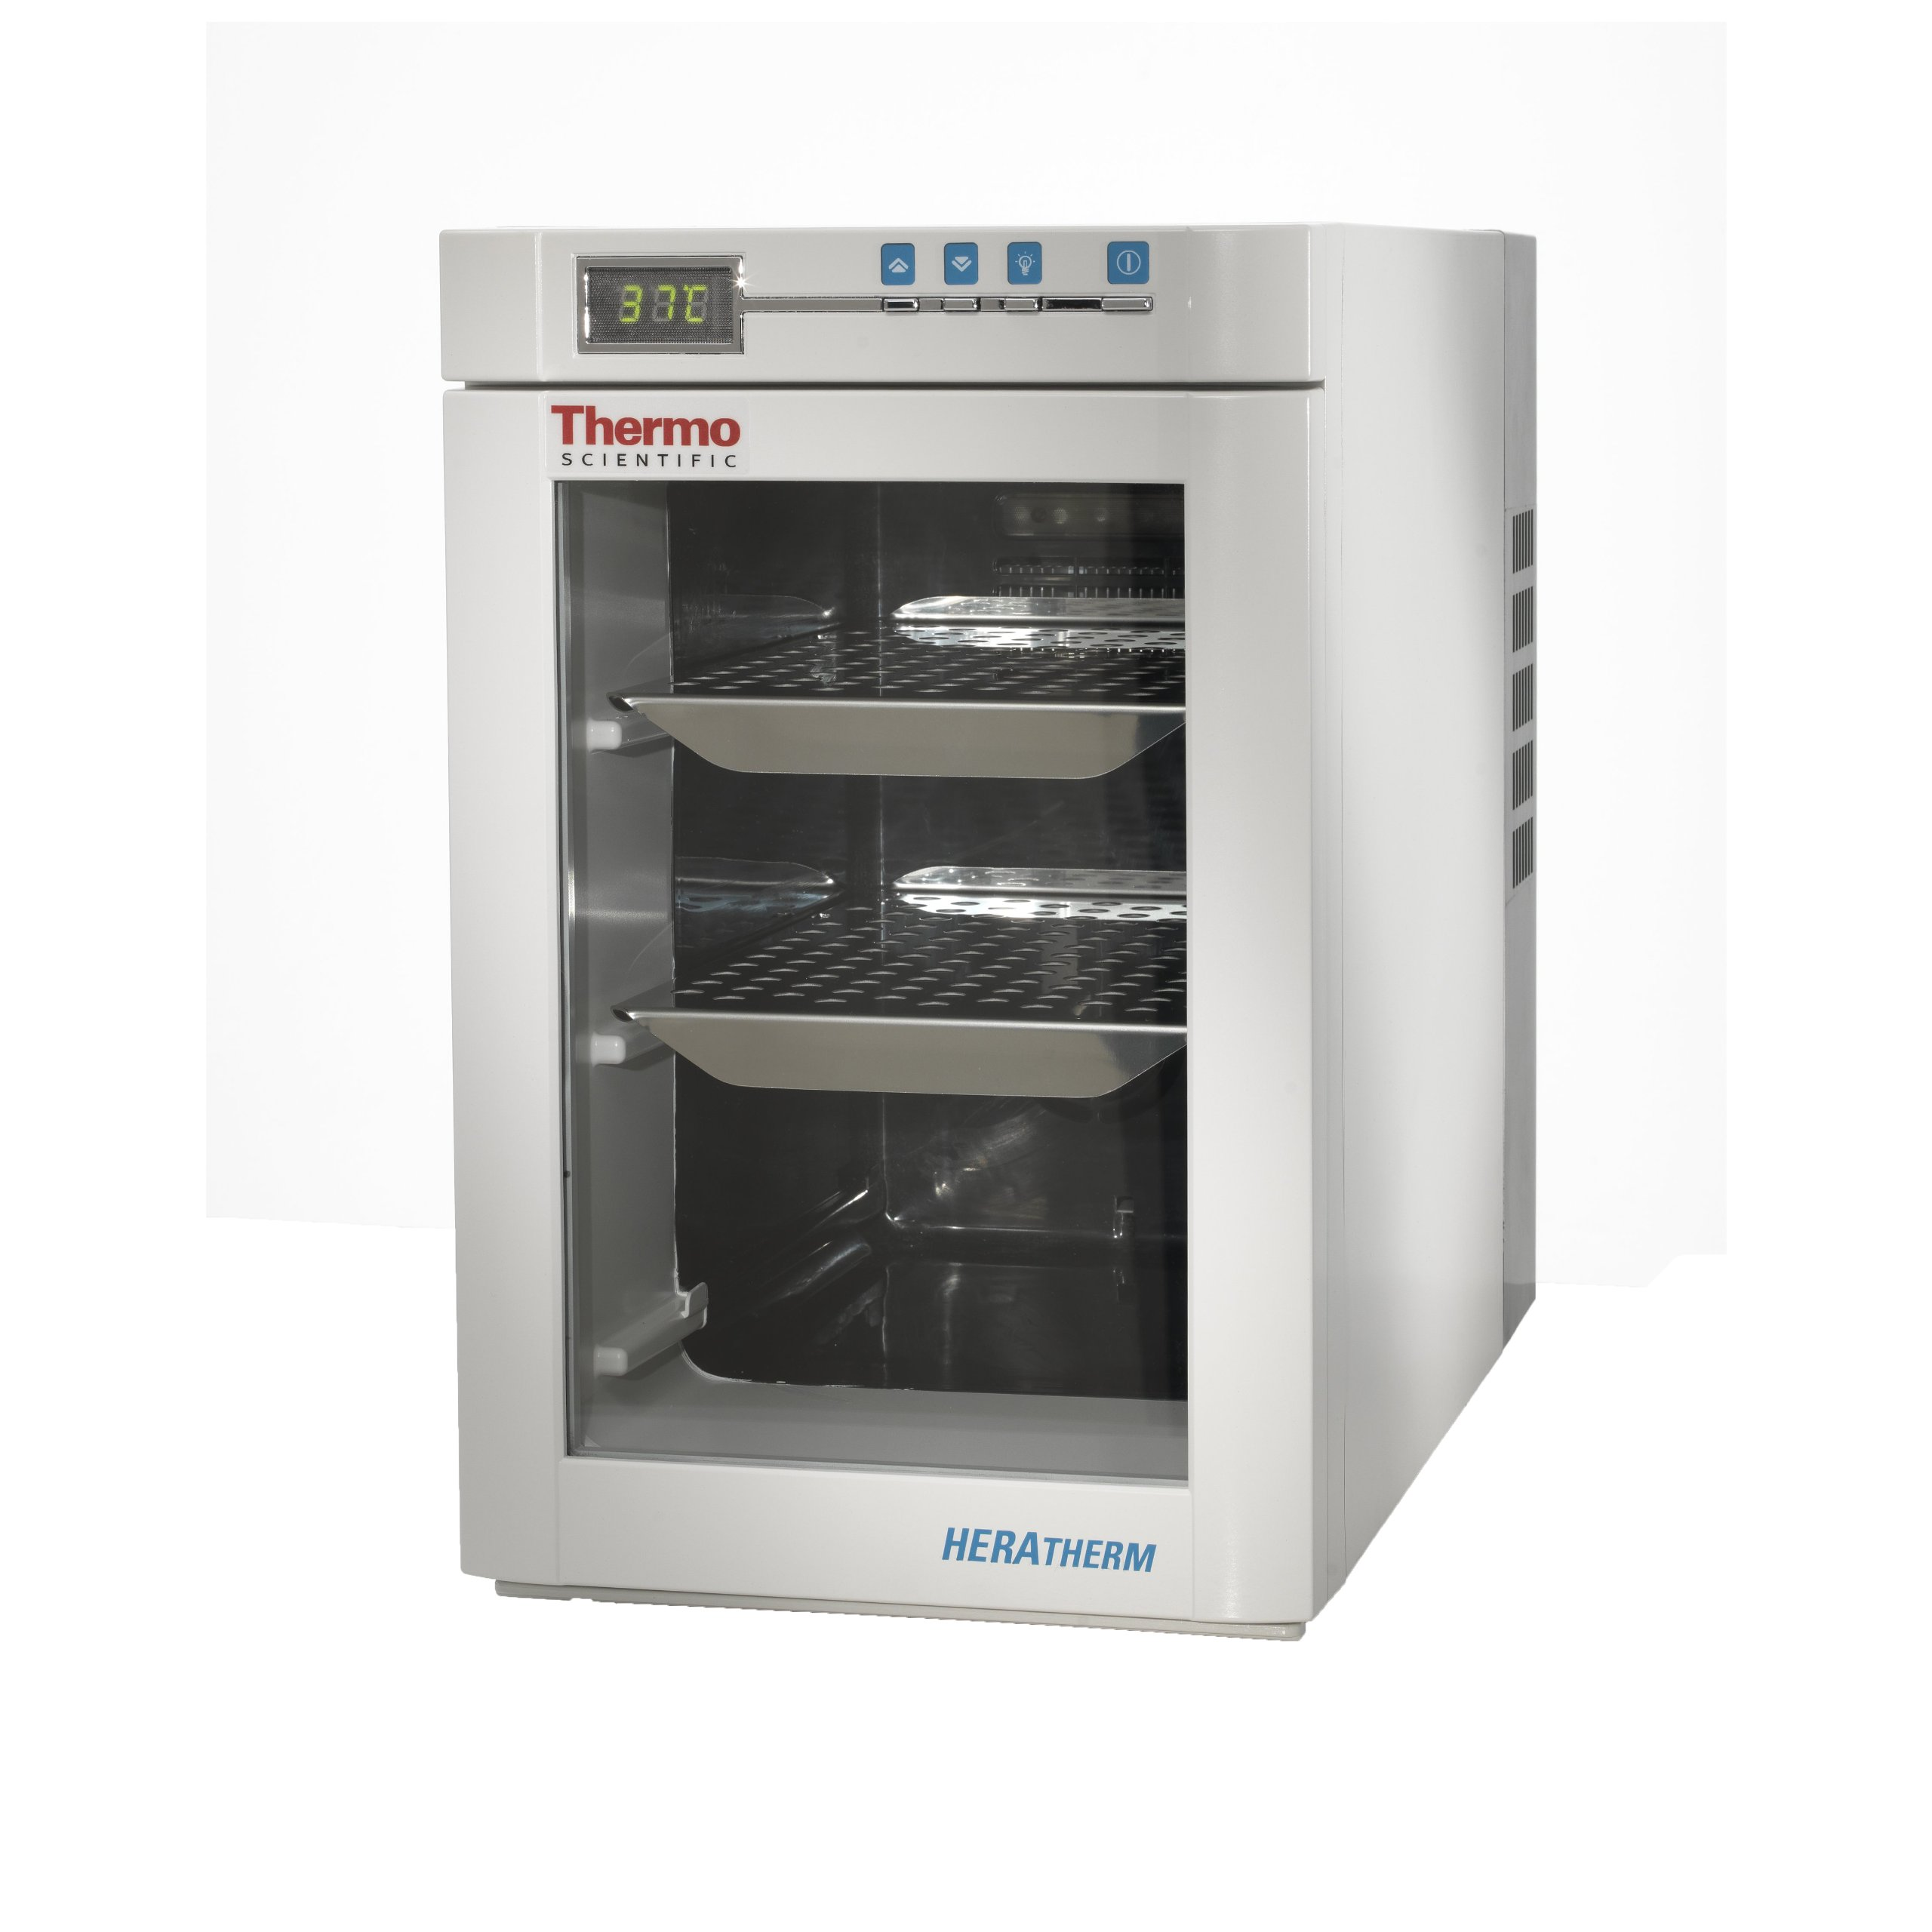 Thermo Scientific  Heratherm 50125590 Model IMC18 Compact Microbiological Laboratory Incubator, Mechanical Convection, 17 to 40 Degree C Temperature Range, 0.65 Cubic Foot/18L Capacity, 100 to 240V, with US Plug